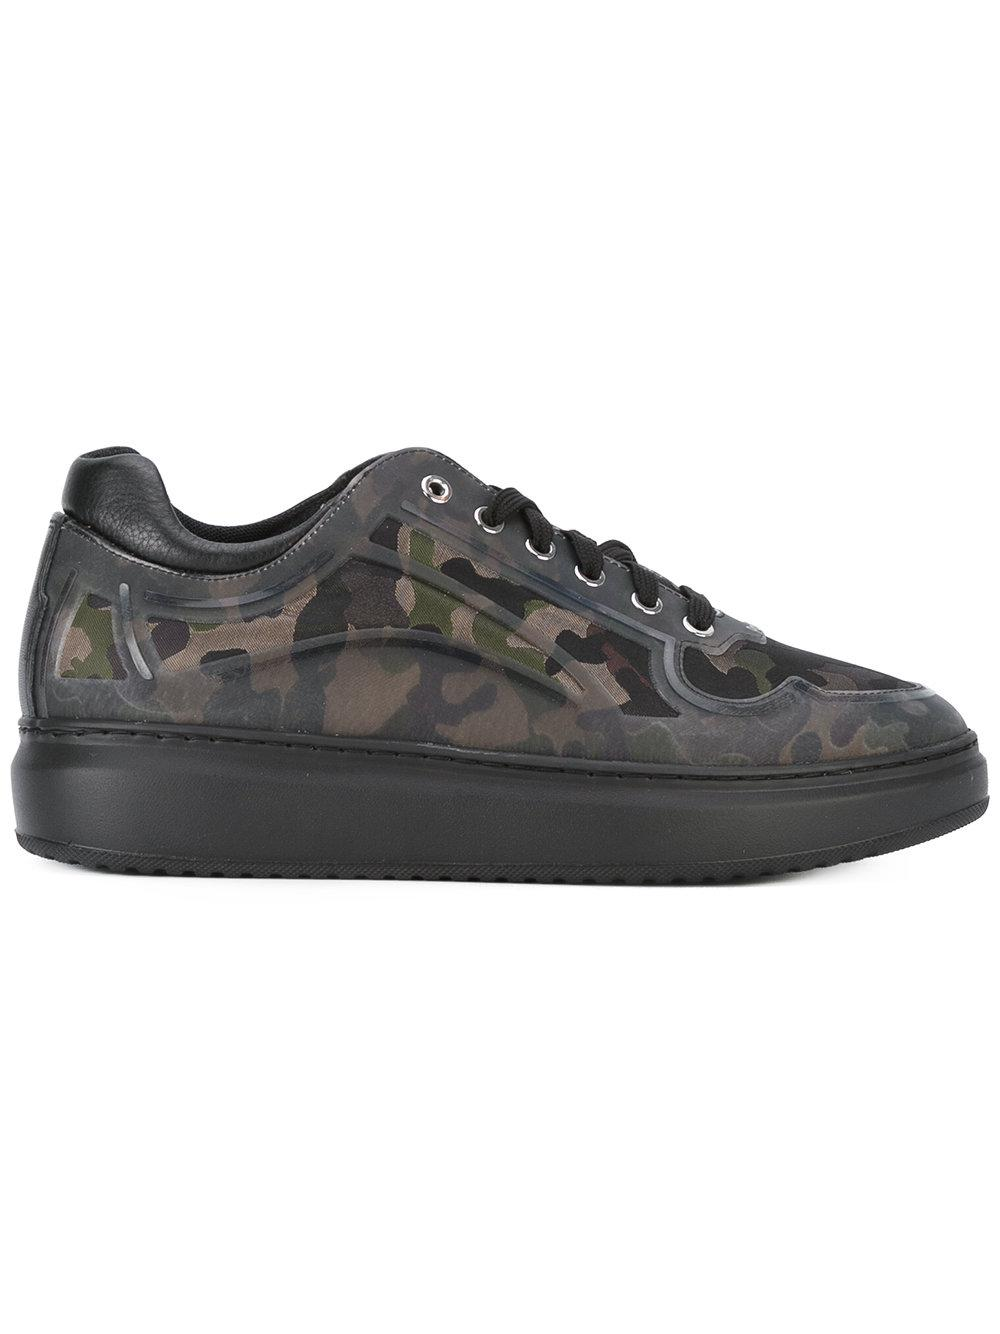 Pollini Camouflage Print Sneakers in Green